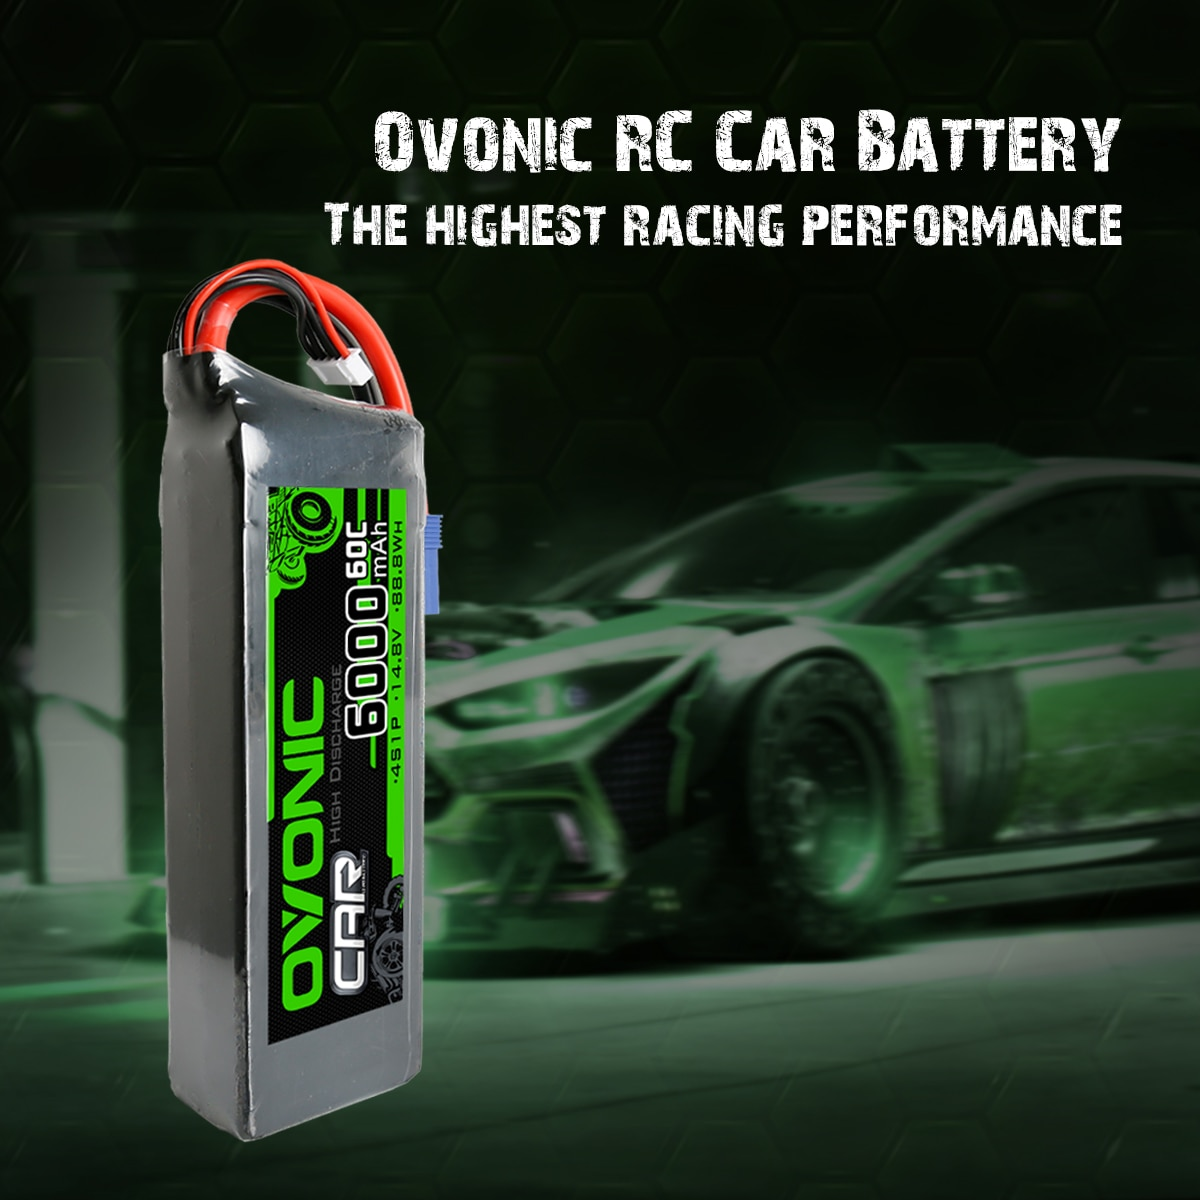 Oovnic 4S RC Lipo Battery 60C 14.8V 6000 MAh 4S LiPo Battery Pack With EC5 Plug For 1/5 Arrma For Outcast Kraton 8S enlarge